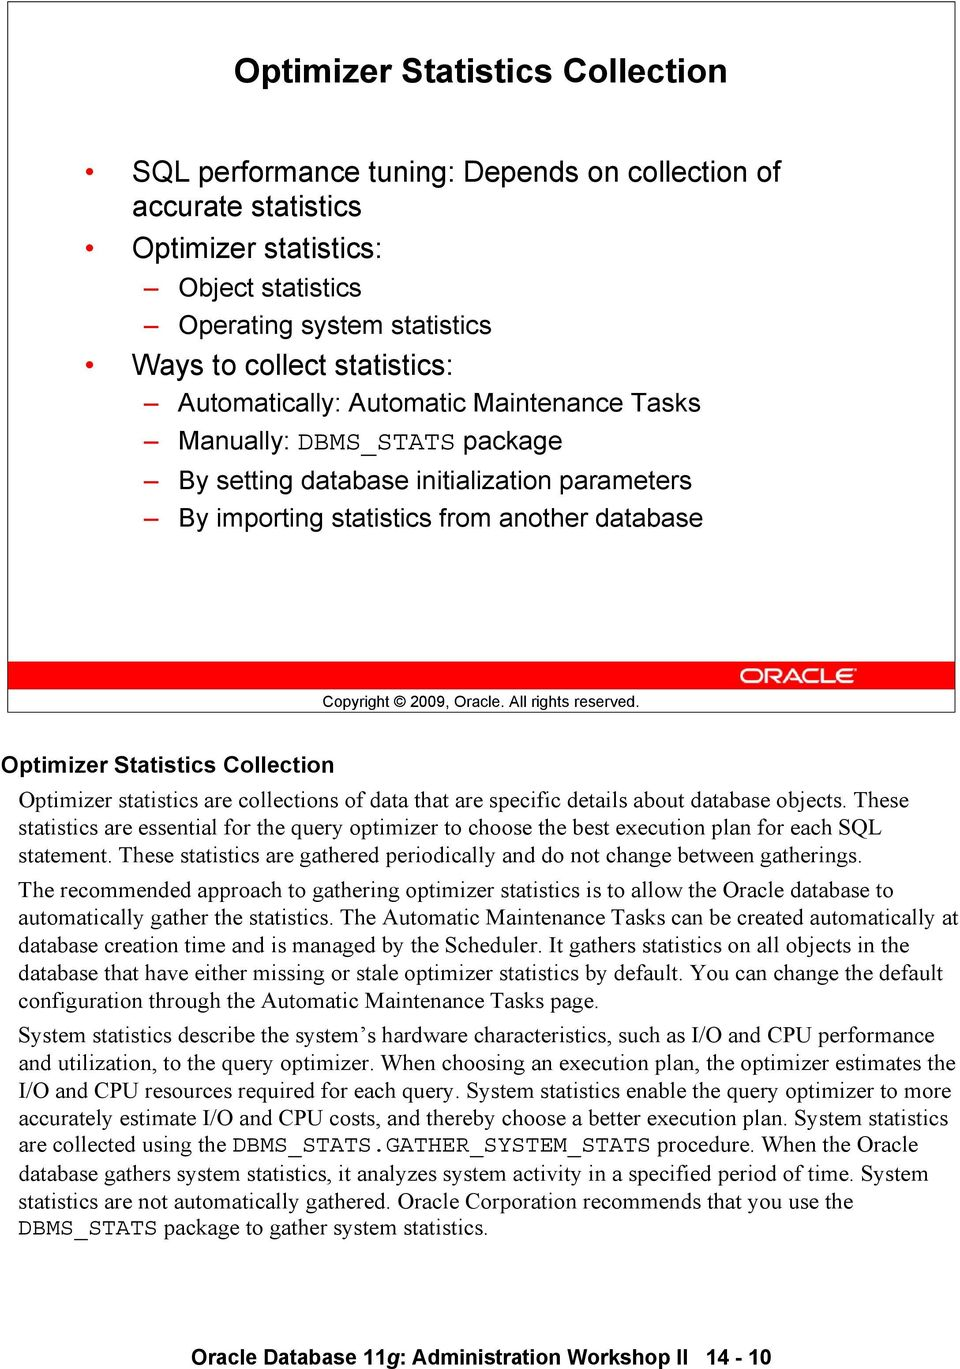 Optimizer statistics are collections of data that are specific details about database objects.